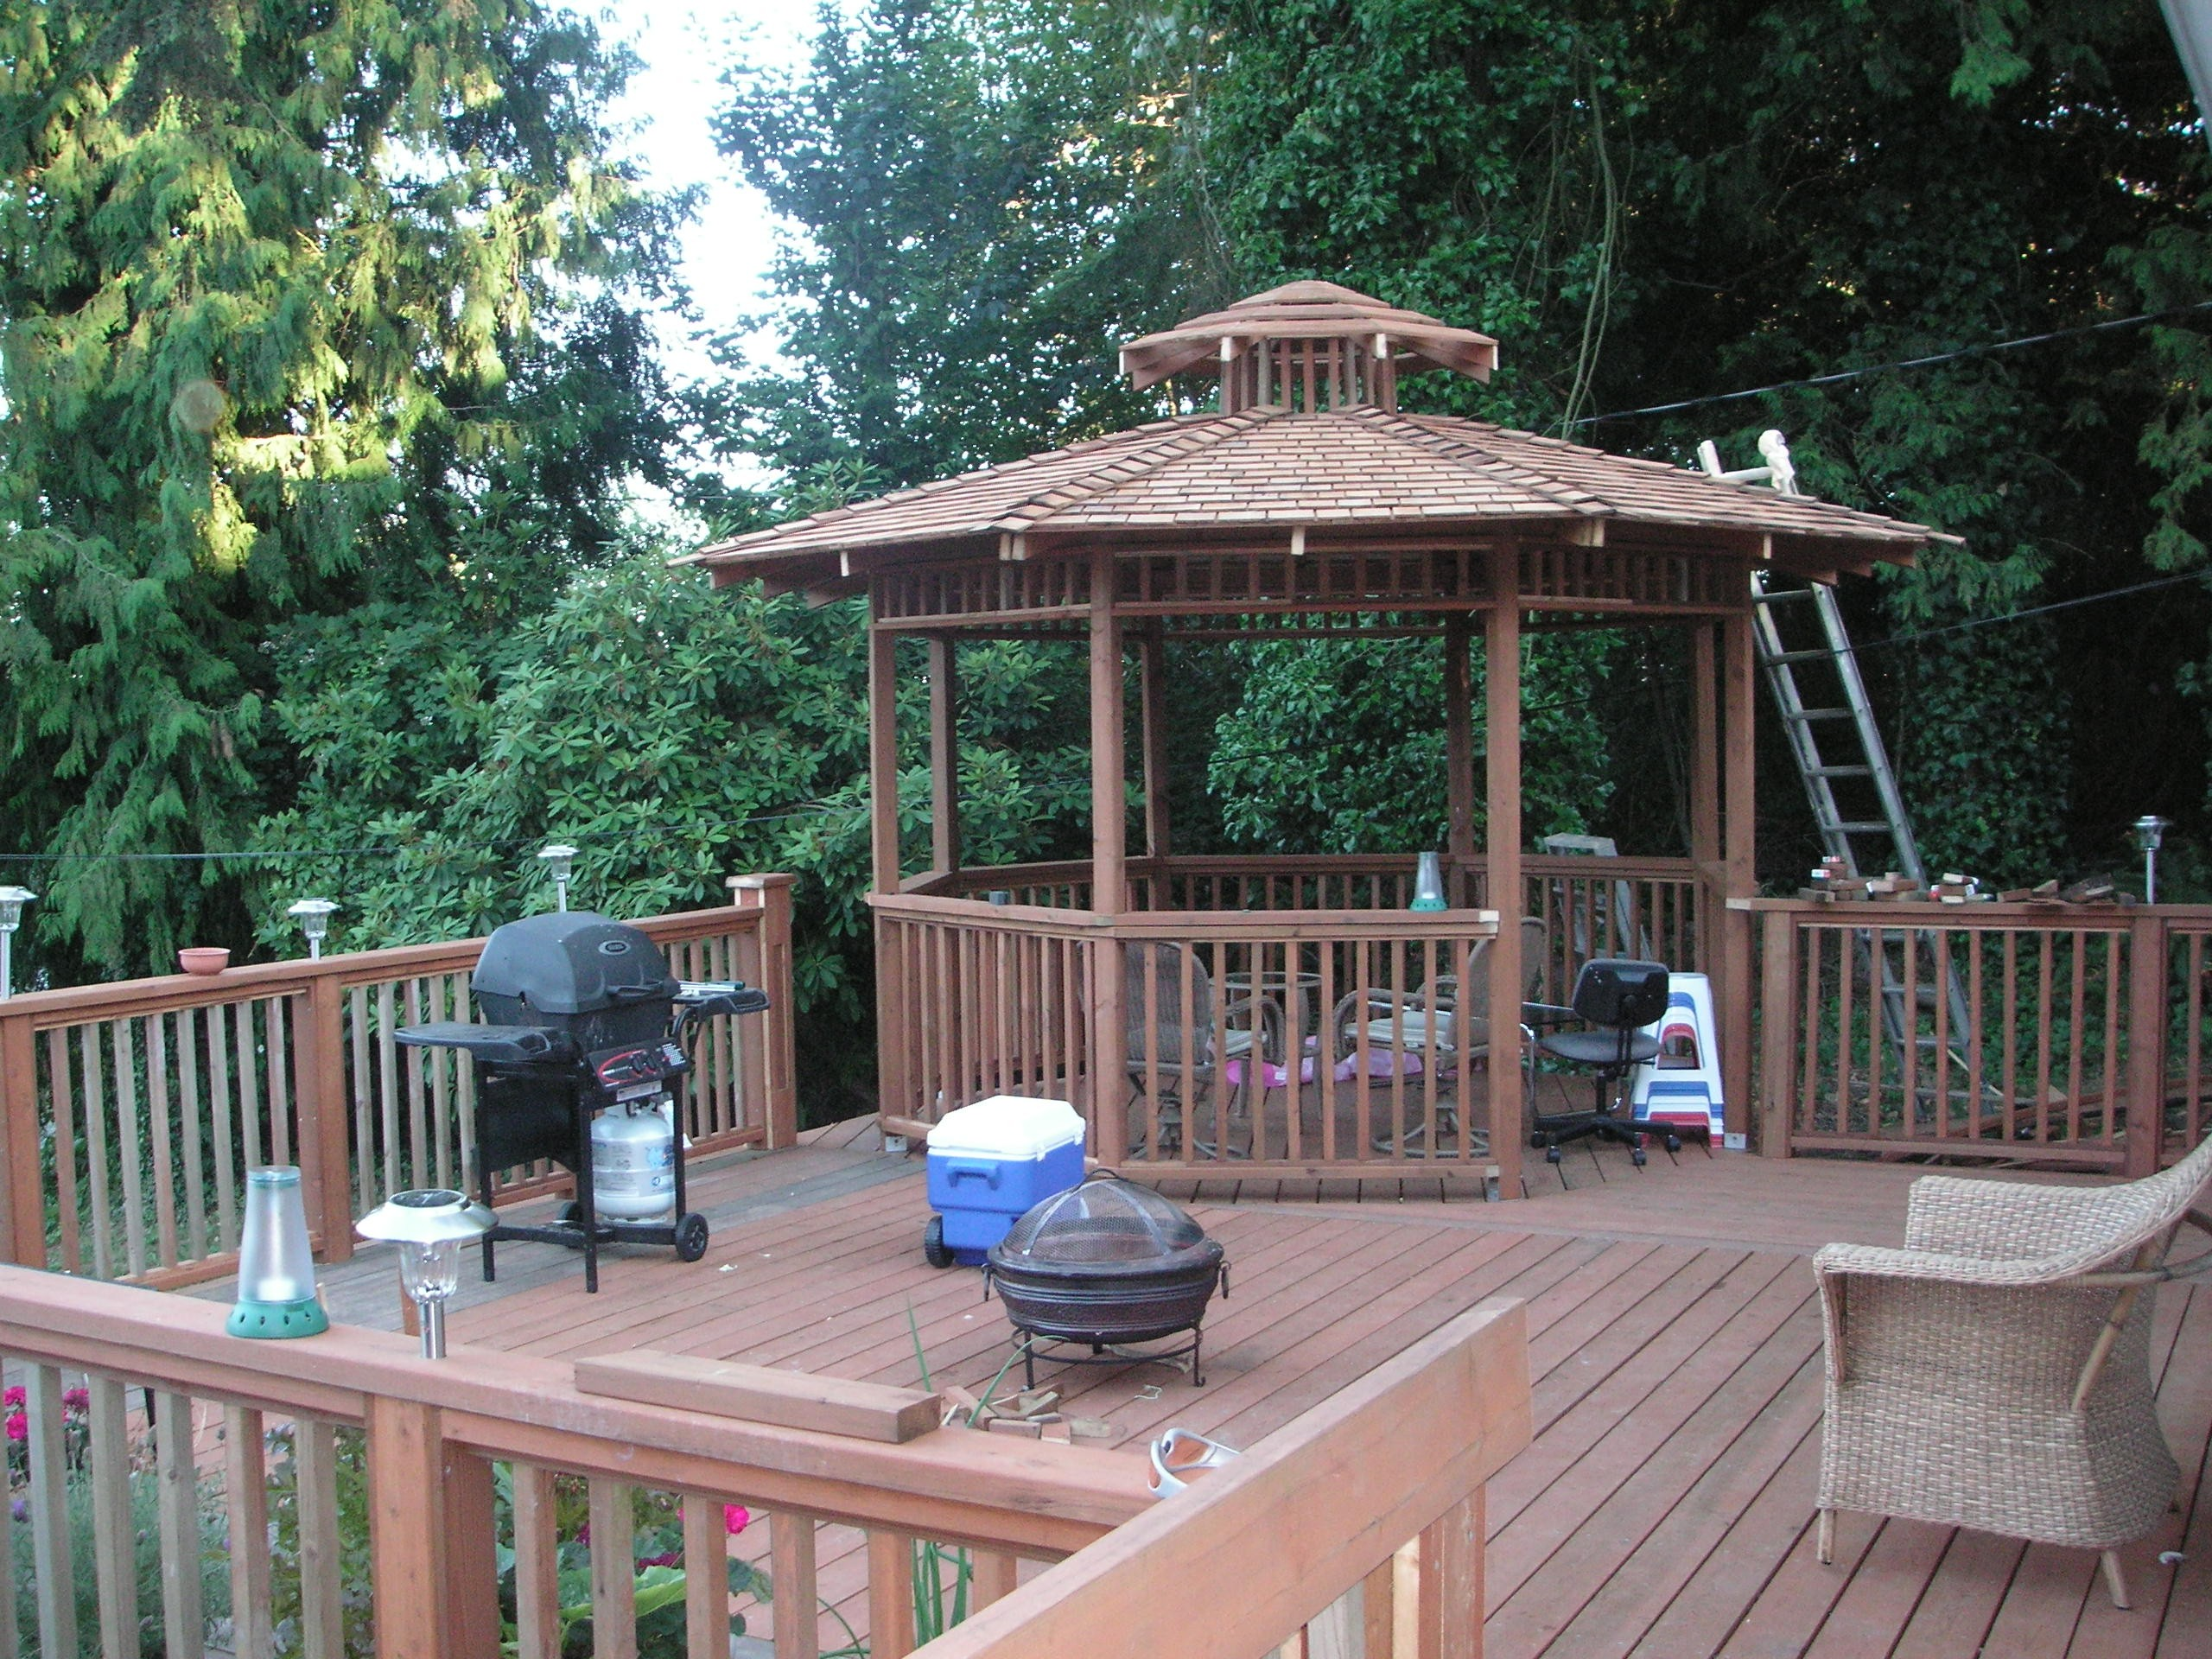 Insider how to build a gazebo on a deck garden landscape for Gazebo house plans